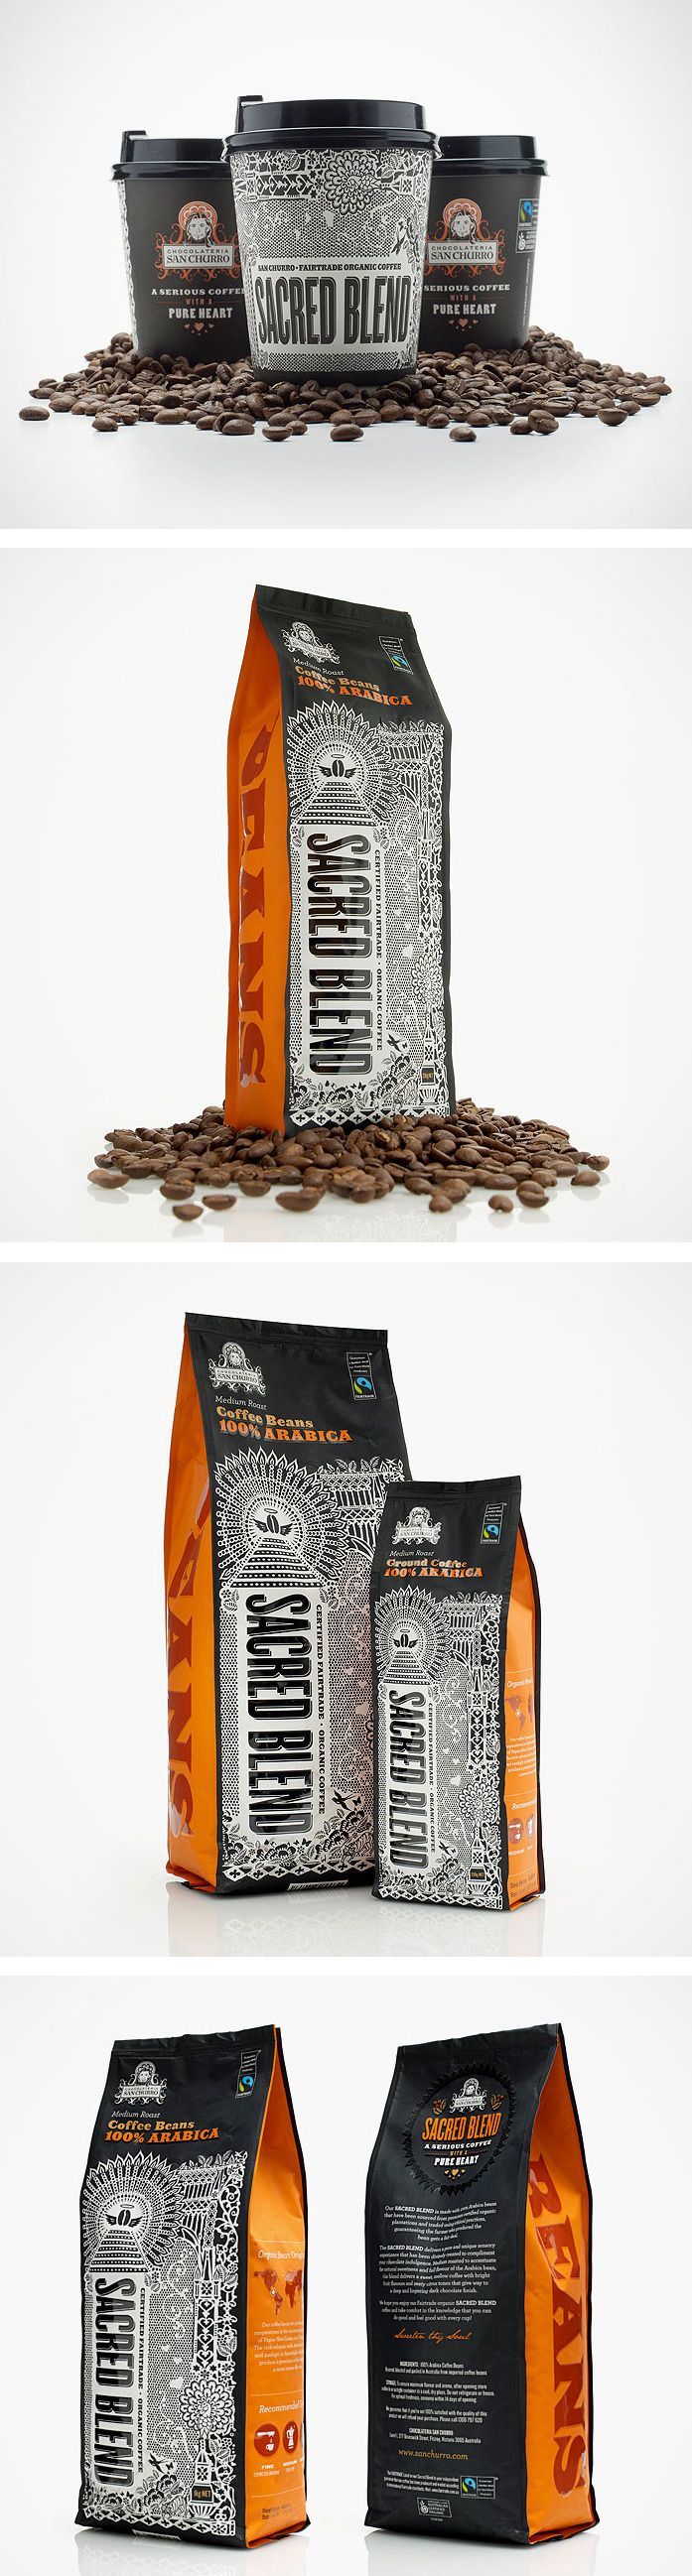 Sar Churro Sacred Blend by Studio Alto